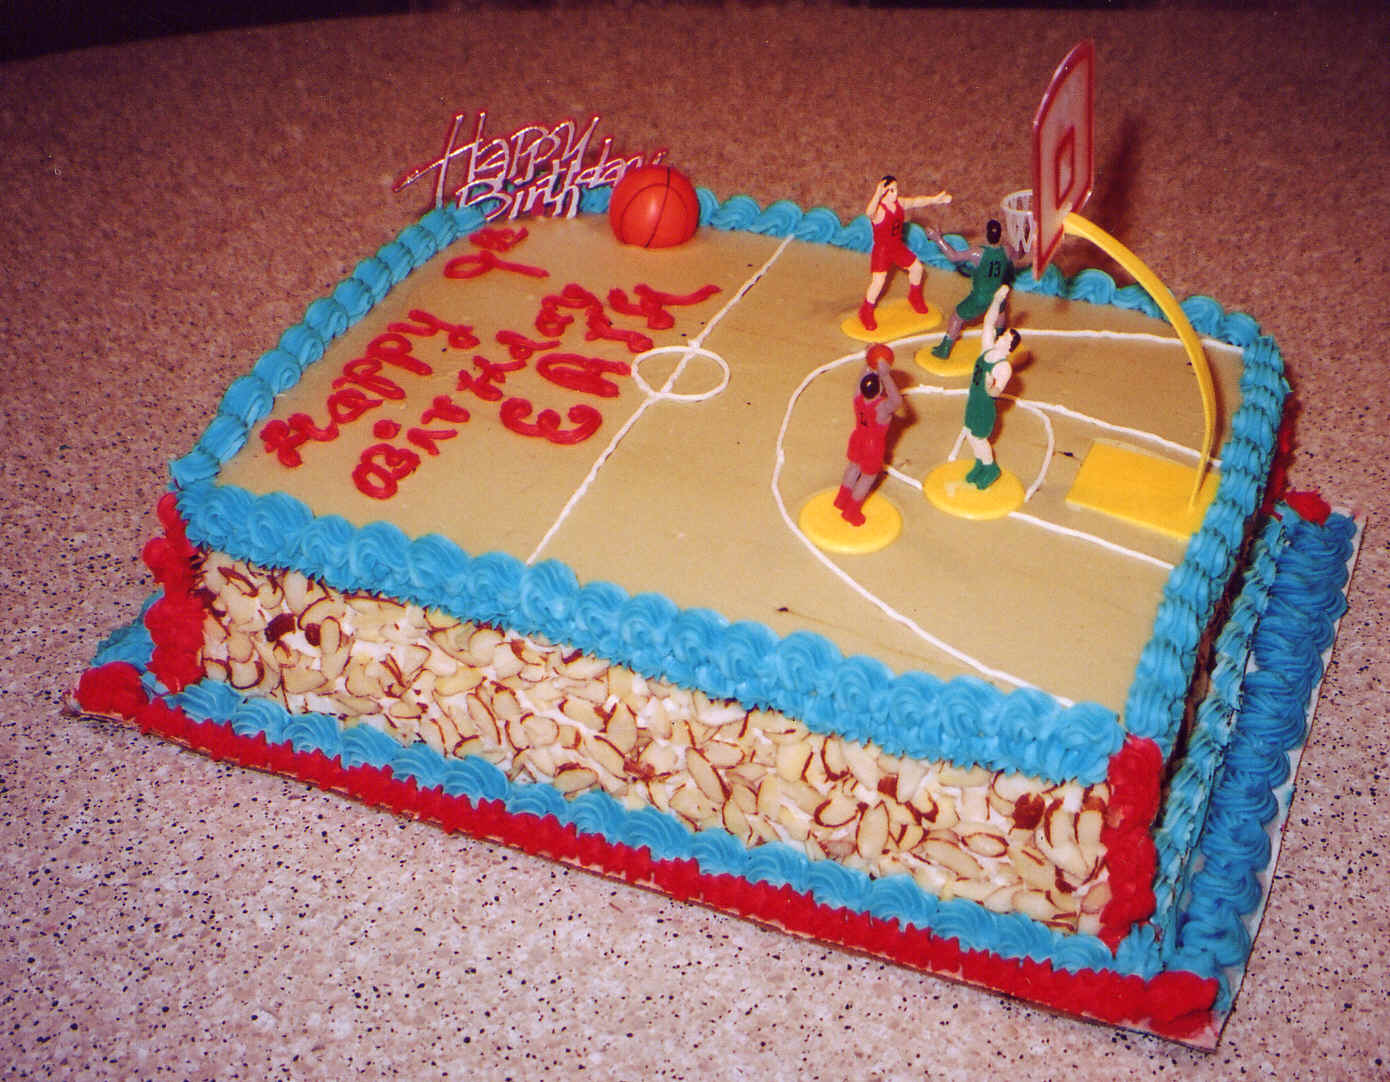 Basketball Court Cake Images : Basketball Cakes   Decoration Ideas Little Birthday Cakes